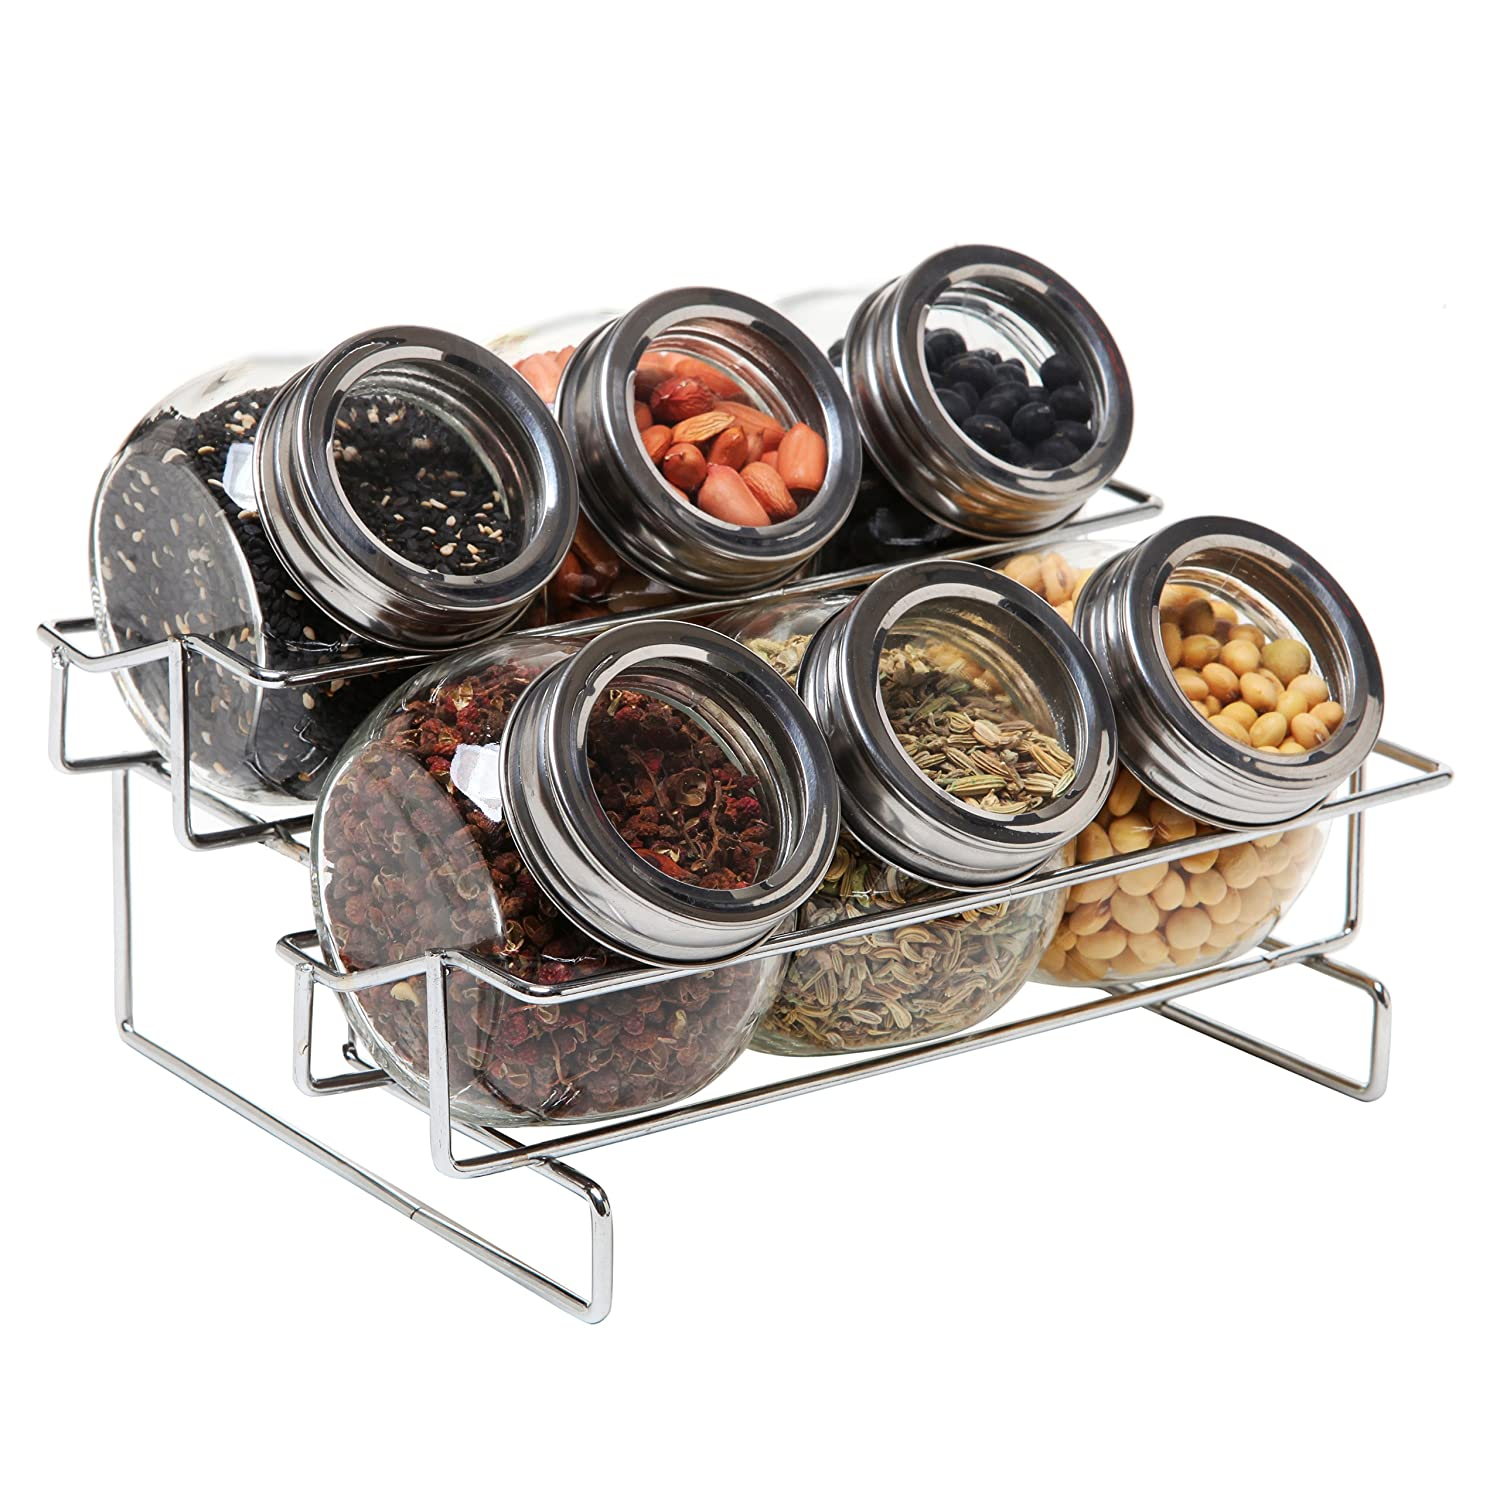 Amazon.com: 6 Jar Metal and Glass Food Spice Kitchen Storage Container Rack  - MyGift: Kitchen & Dining